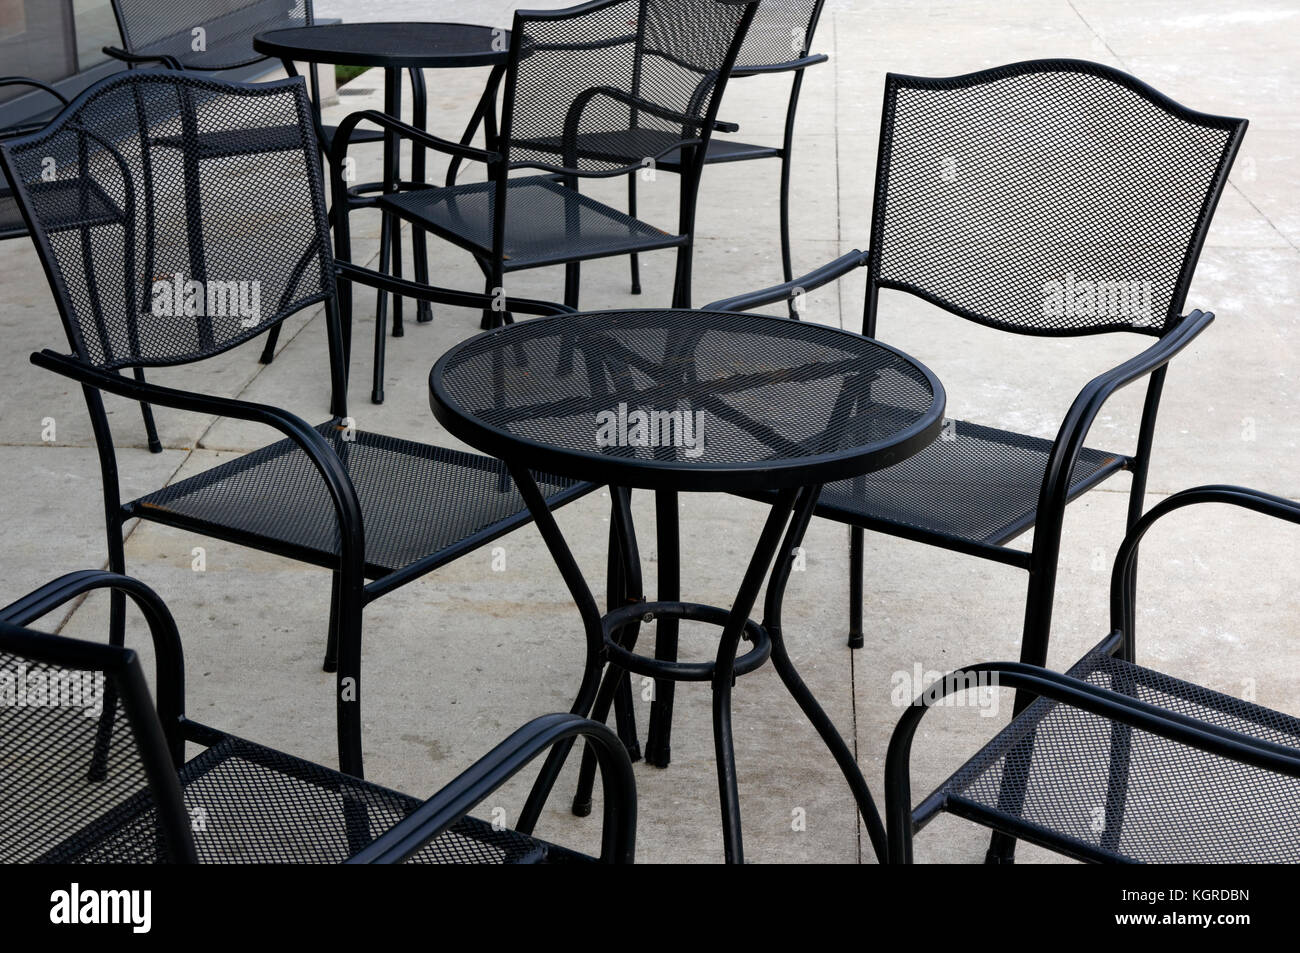 Metal Furniture Stockfotos & Metal Furniture Bilder - Alamy